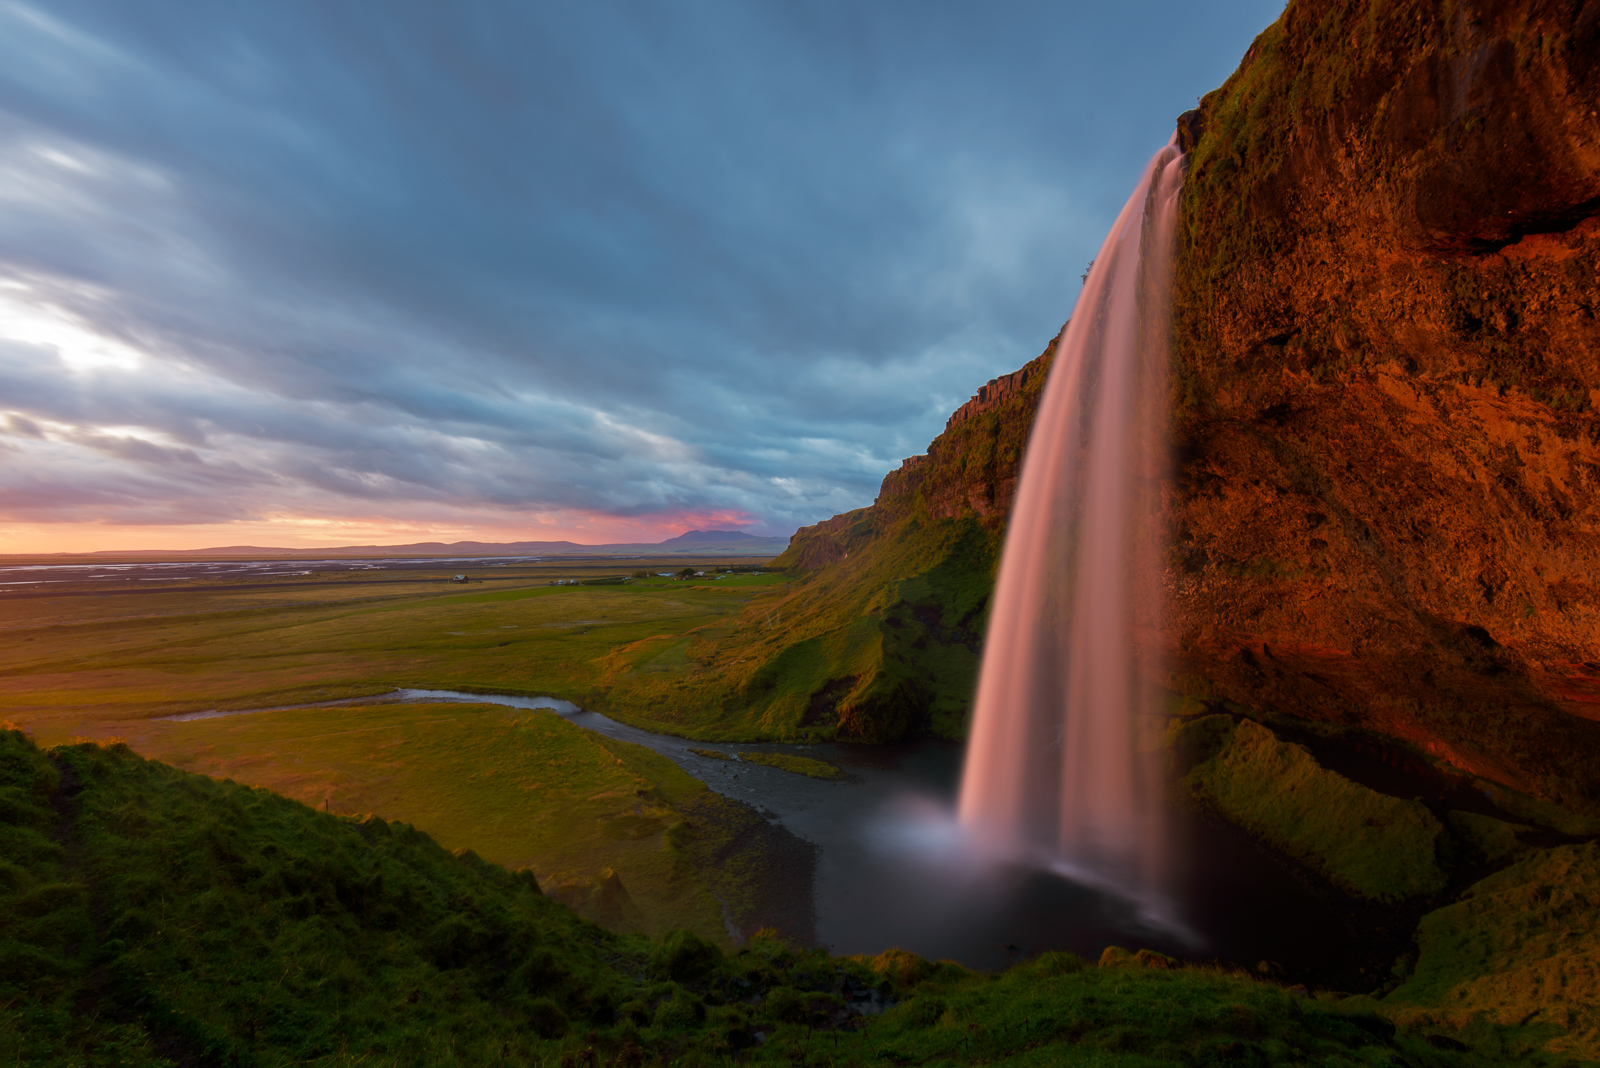 Seljalandsfoss, a waterfall situated on the South Coast of Iceland close to the Ring Road, with a drop of 60 metres (200 feet...